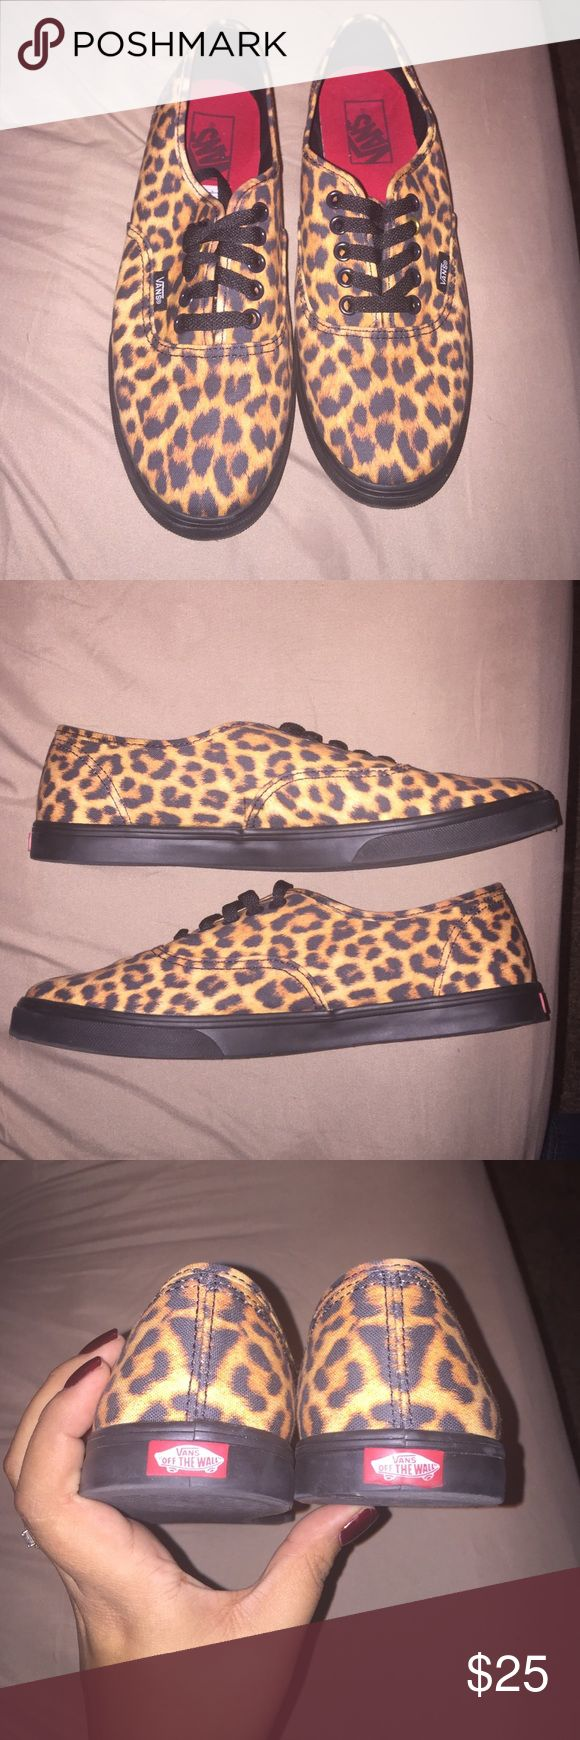 Vans Leopard Print shoes Worn once. They just didn't work for me. Women's 9; men's 7.5. Near perfect condition. Nothing wrong with them. I just never wore them. Vans Shoes Sneakers